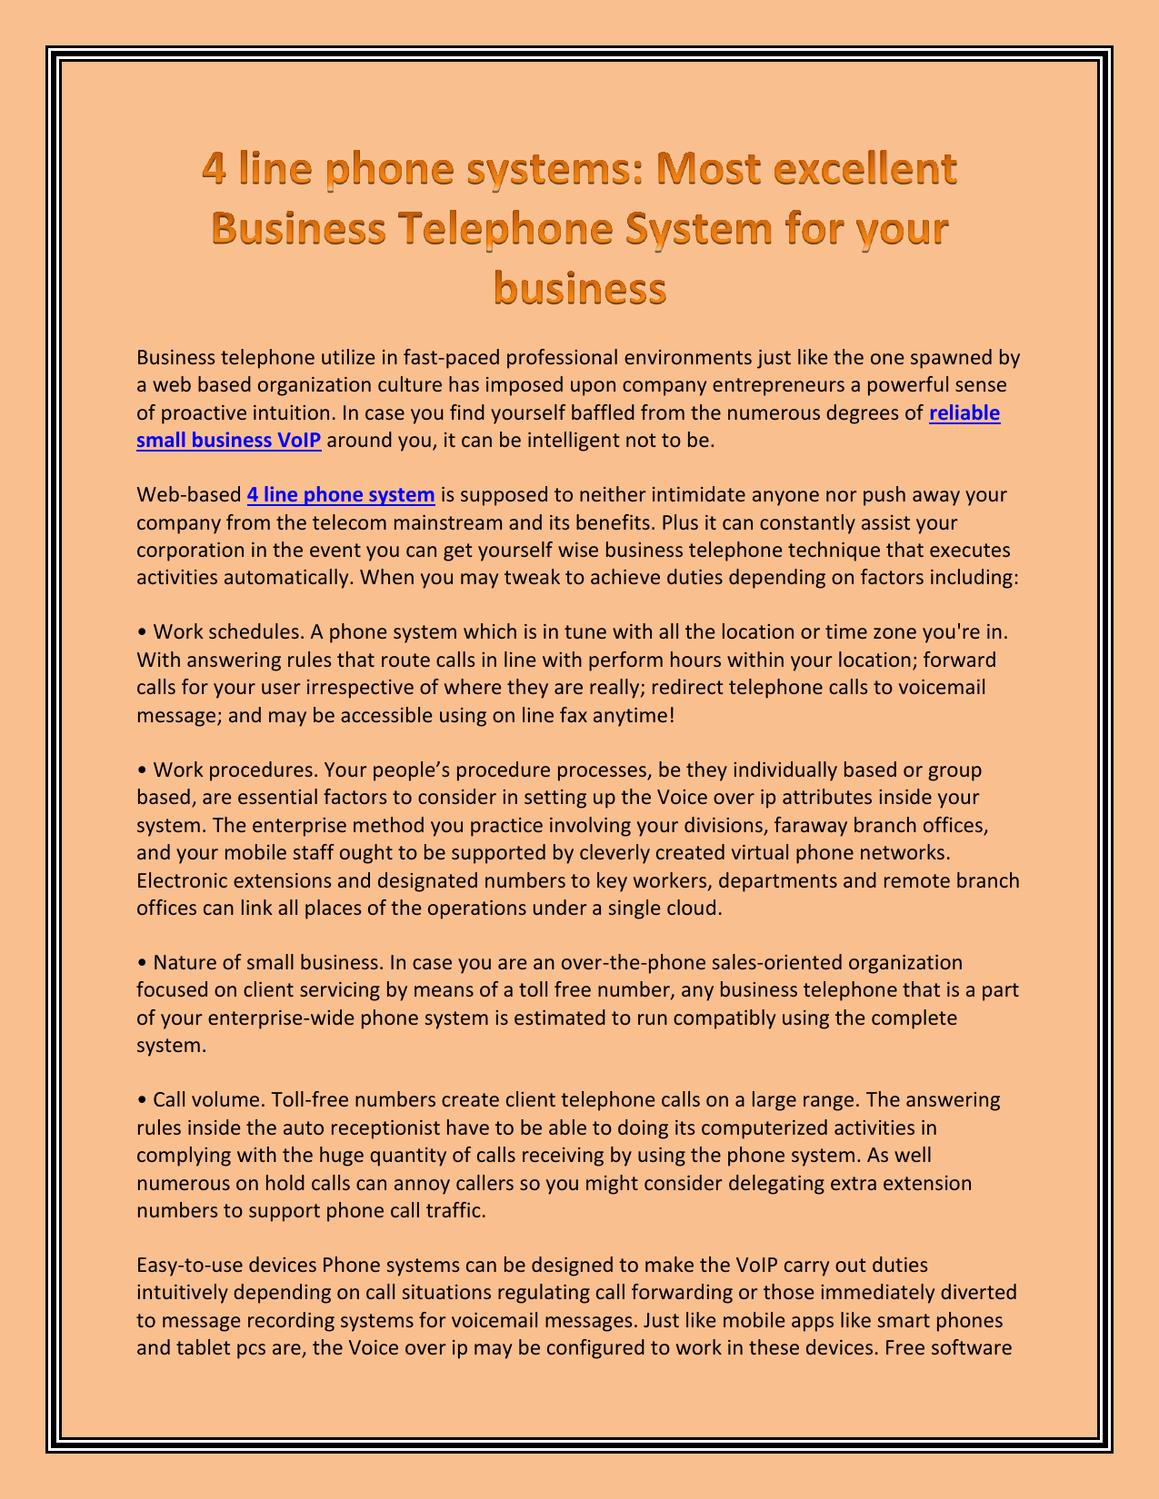 4 line phone systems - Most excellent Business Telephone System for